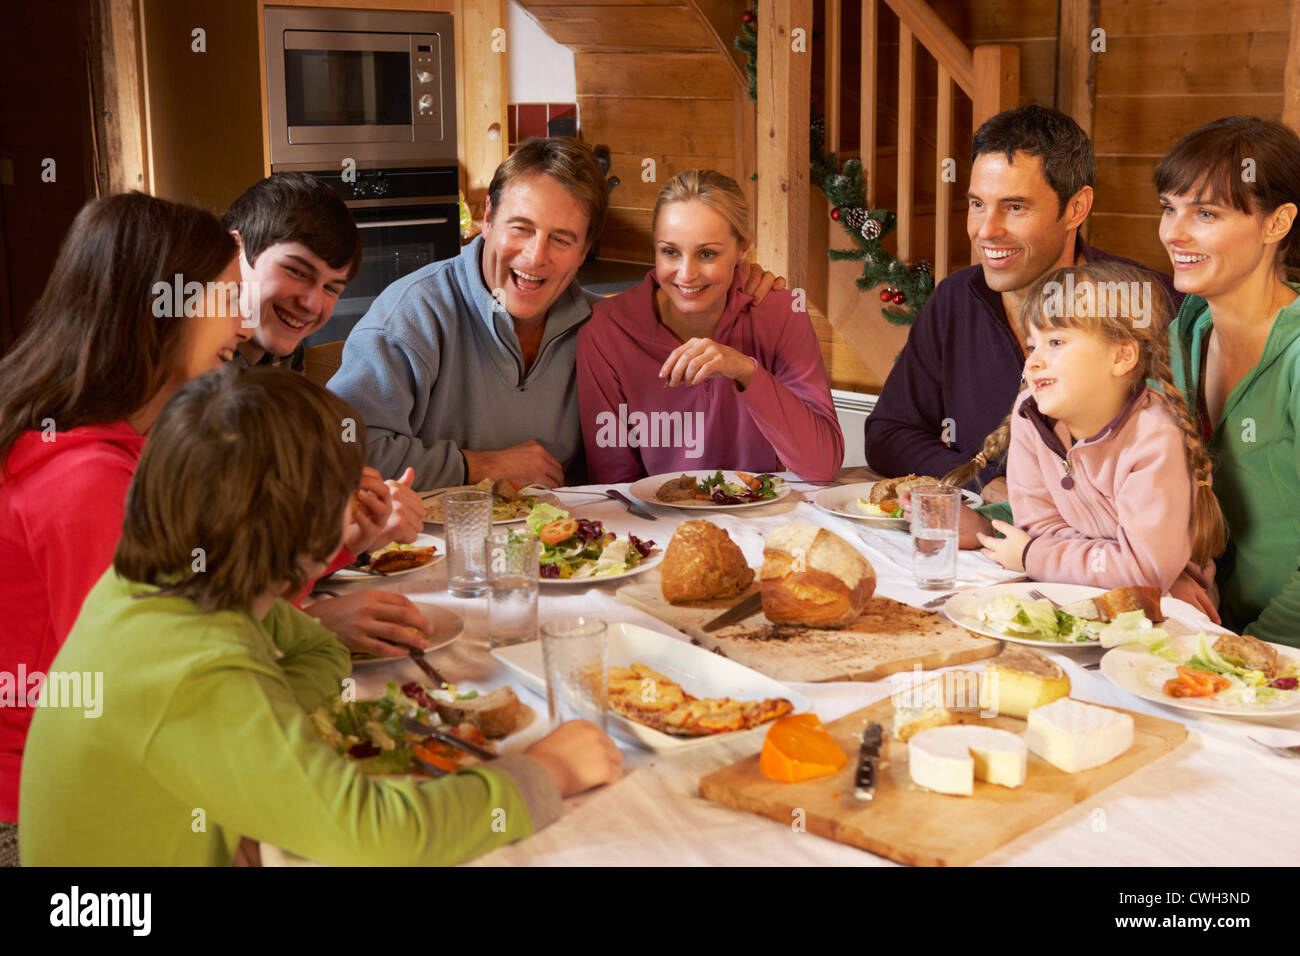 Two Familes Enjoying Meal In Alpine Chalet Together - Stock Image